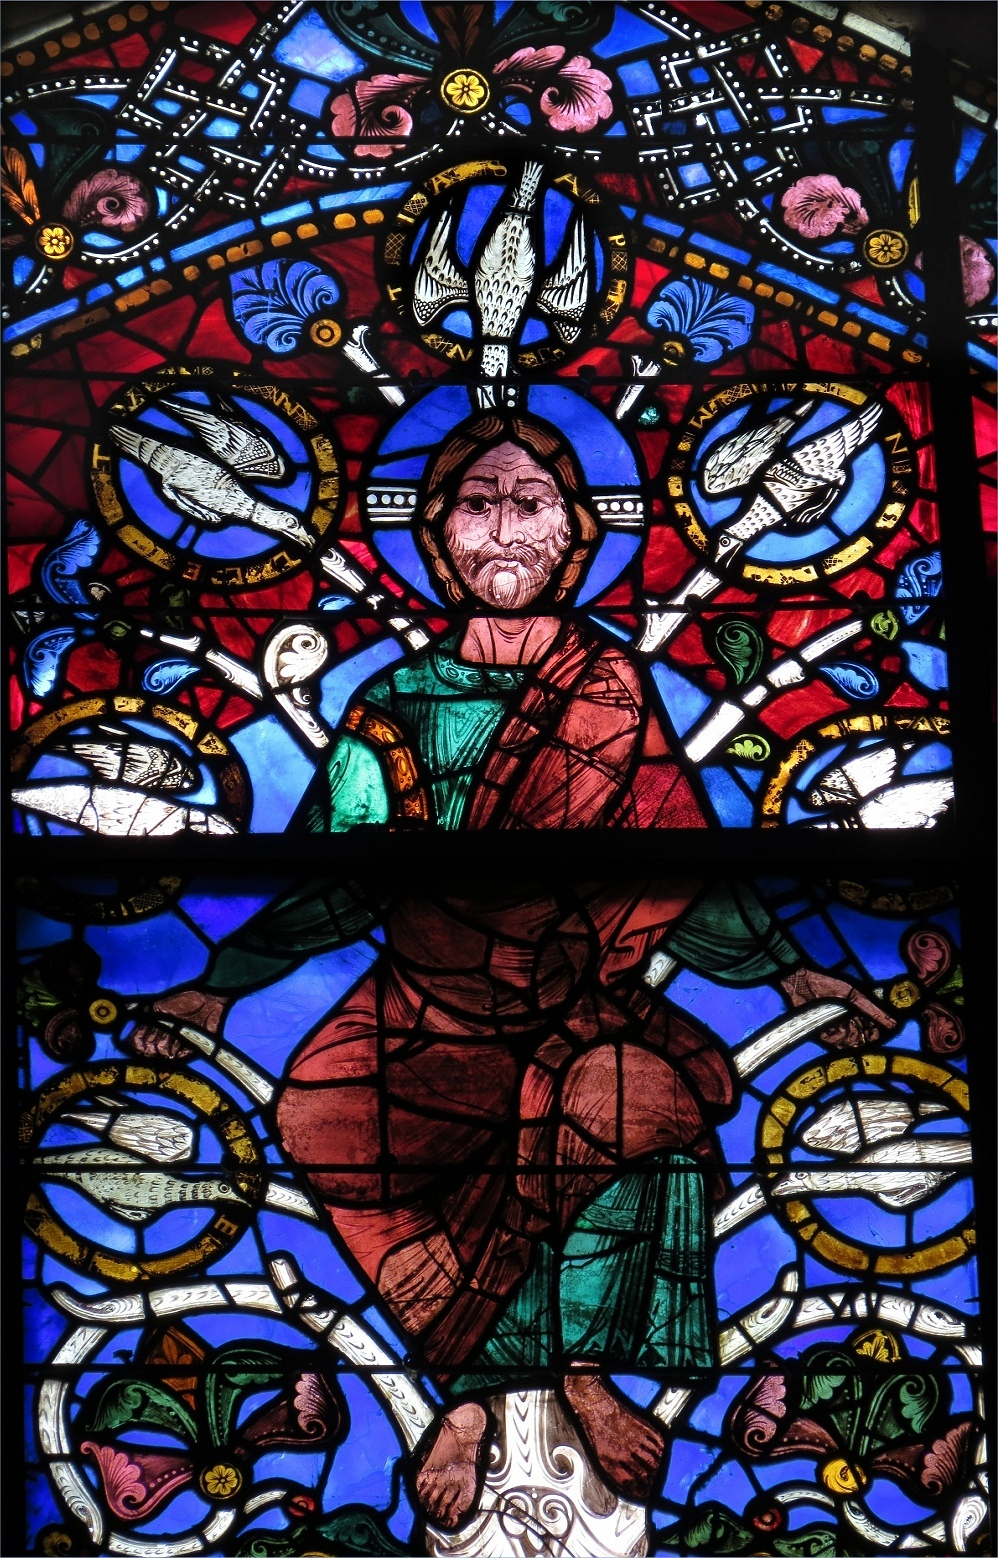 Chartres_Christ_Jesse.jpg (844301 octets)